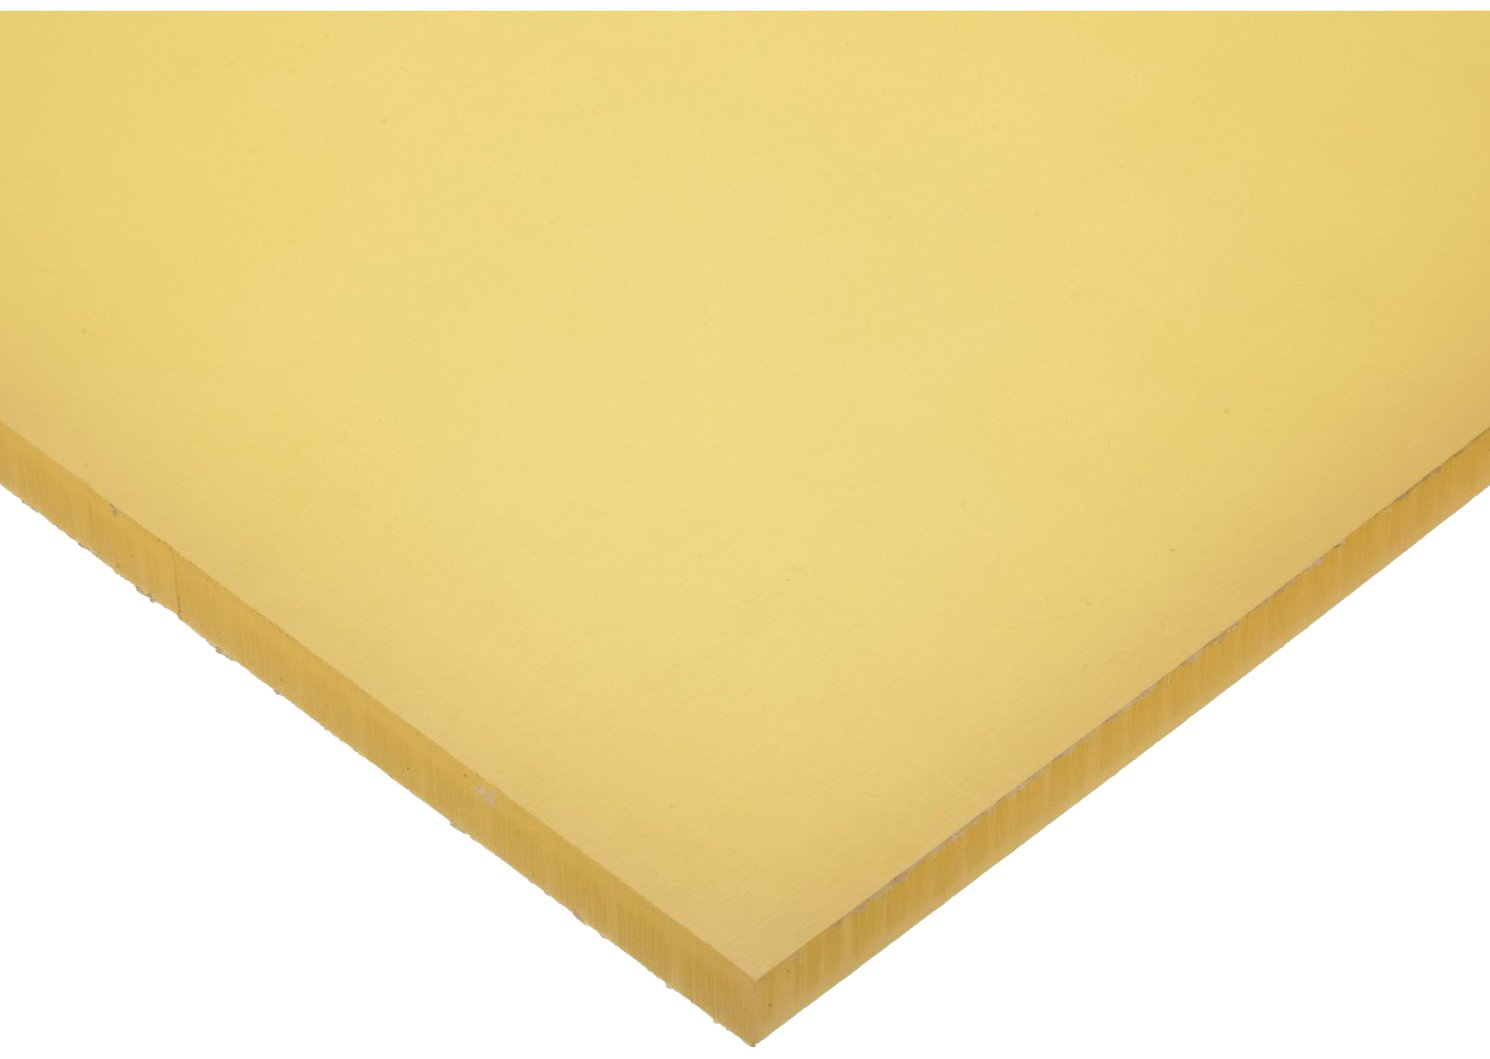 Polyurethane Sheet, No Backing, 40A Durometer, Smooth, ASTM D-624, Amber, 3/16'' Thick, 12'' Width, 12'' Length